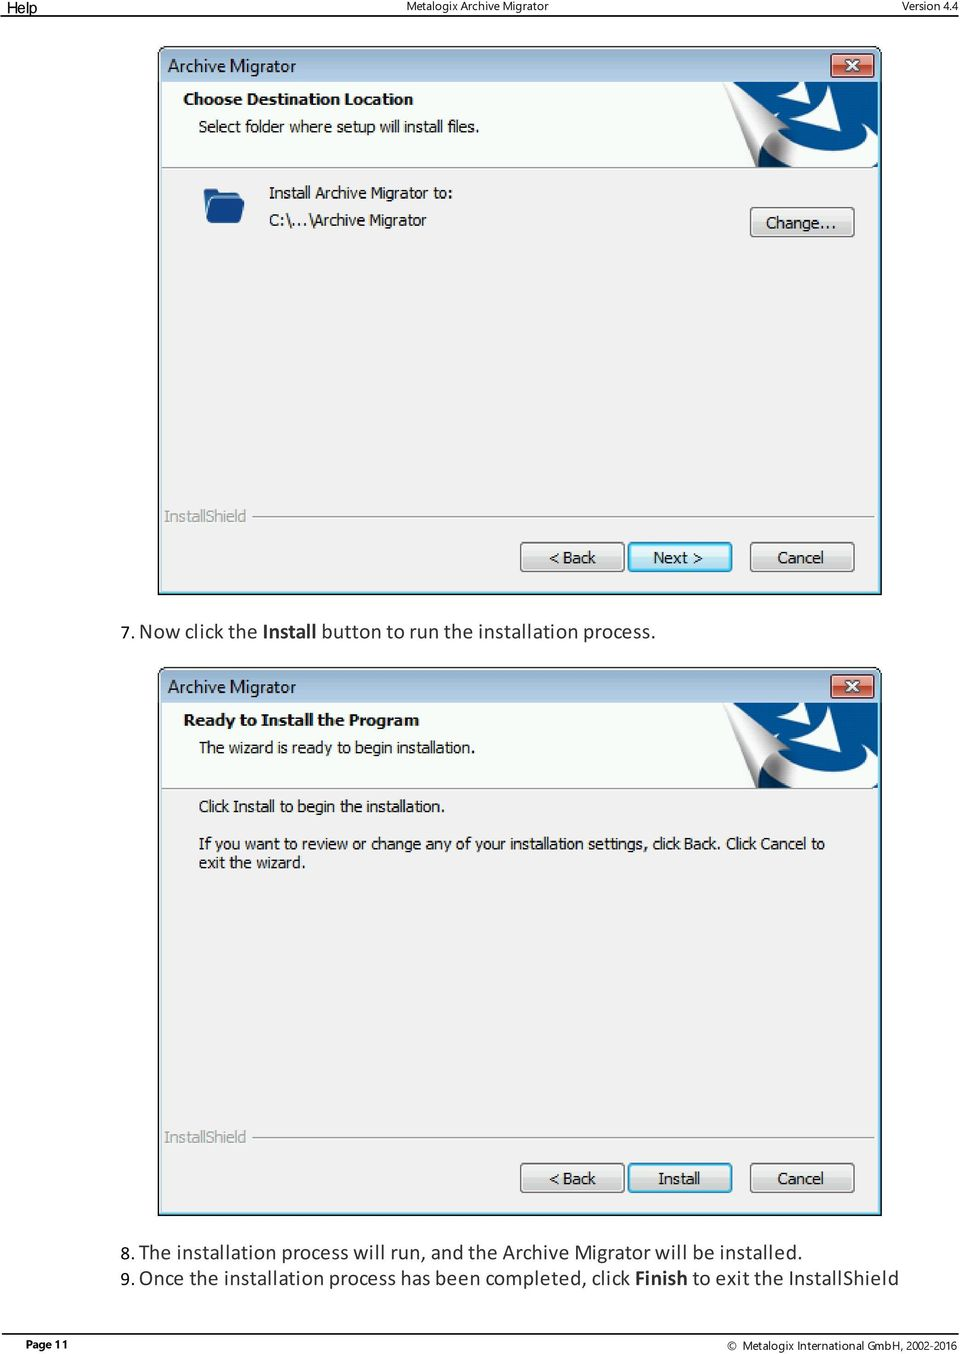 The installation process will run, and the Archive Migrator